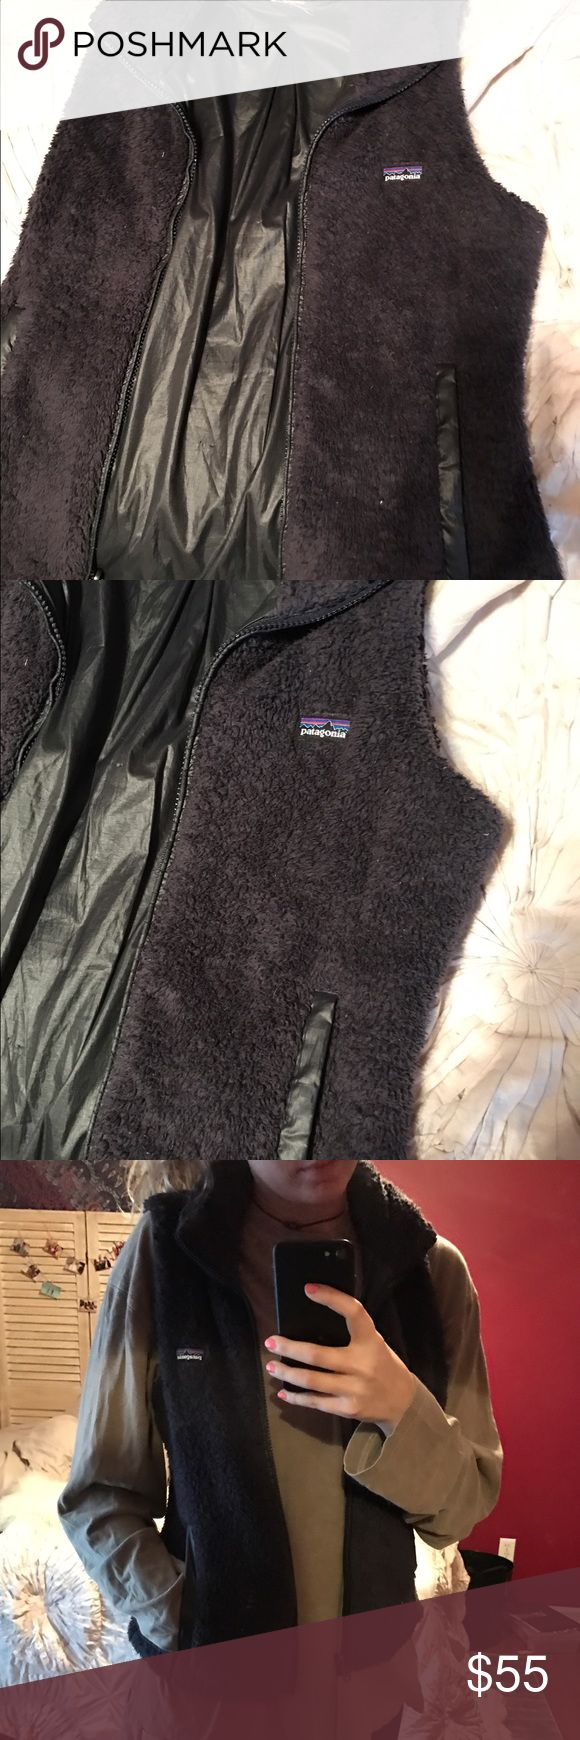 Purple Patagonia Vest Really warm Purple Patagonia Vest, size small! I recently removed the tag because it was barely holding on. Can be reversibly worn because there is another logo on the inside. Patagonia Jackets & Coats Vests